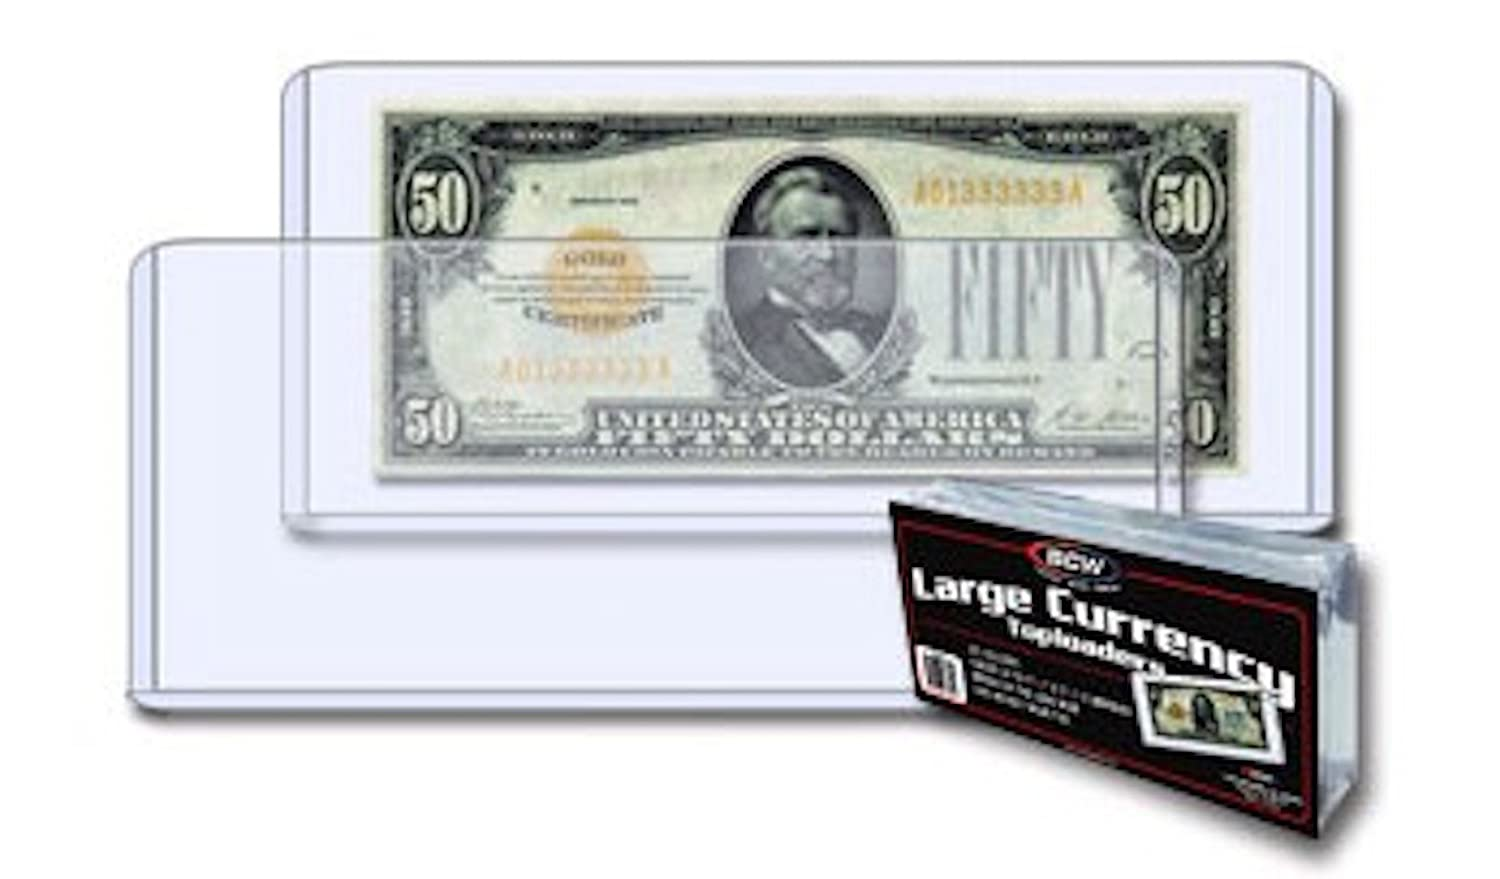 BCW 1-TLCH-LB Currency Topload Holder - Large Bill